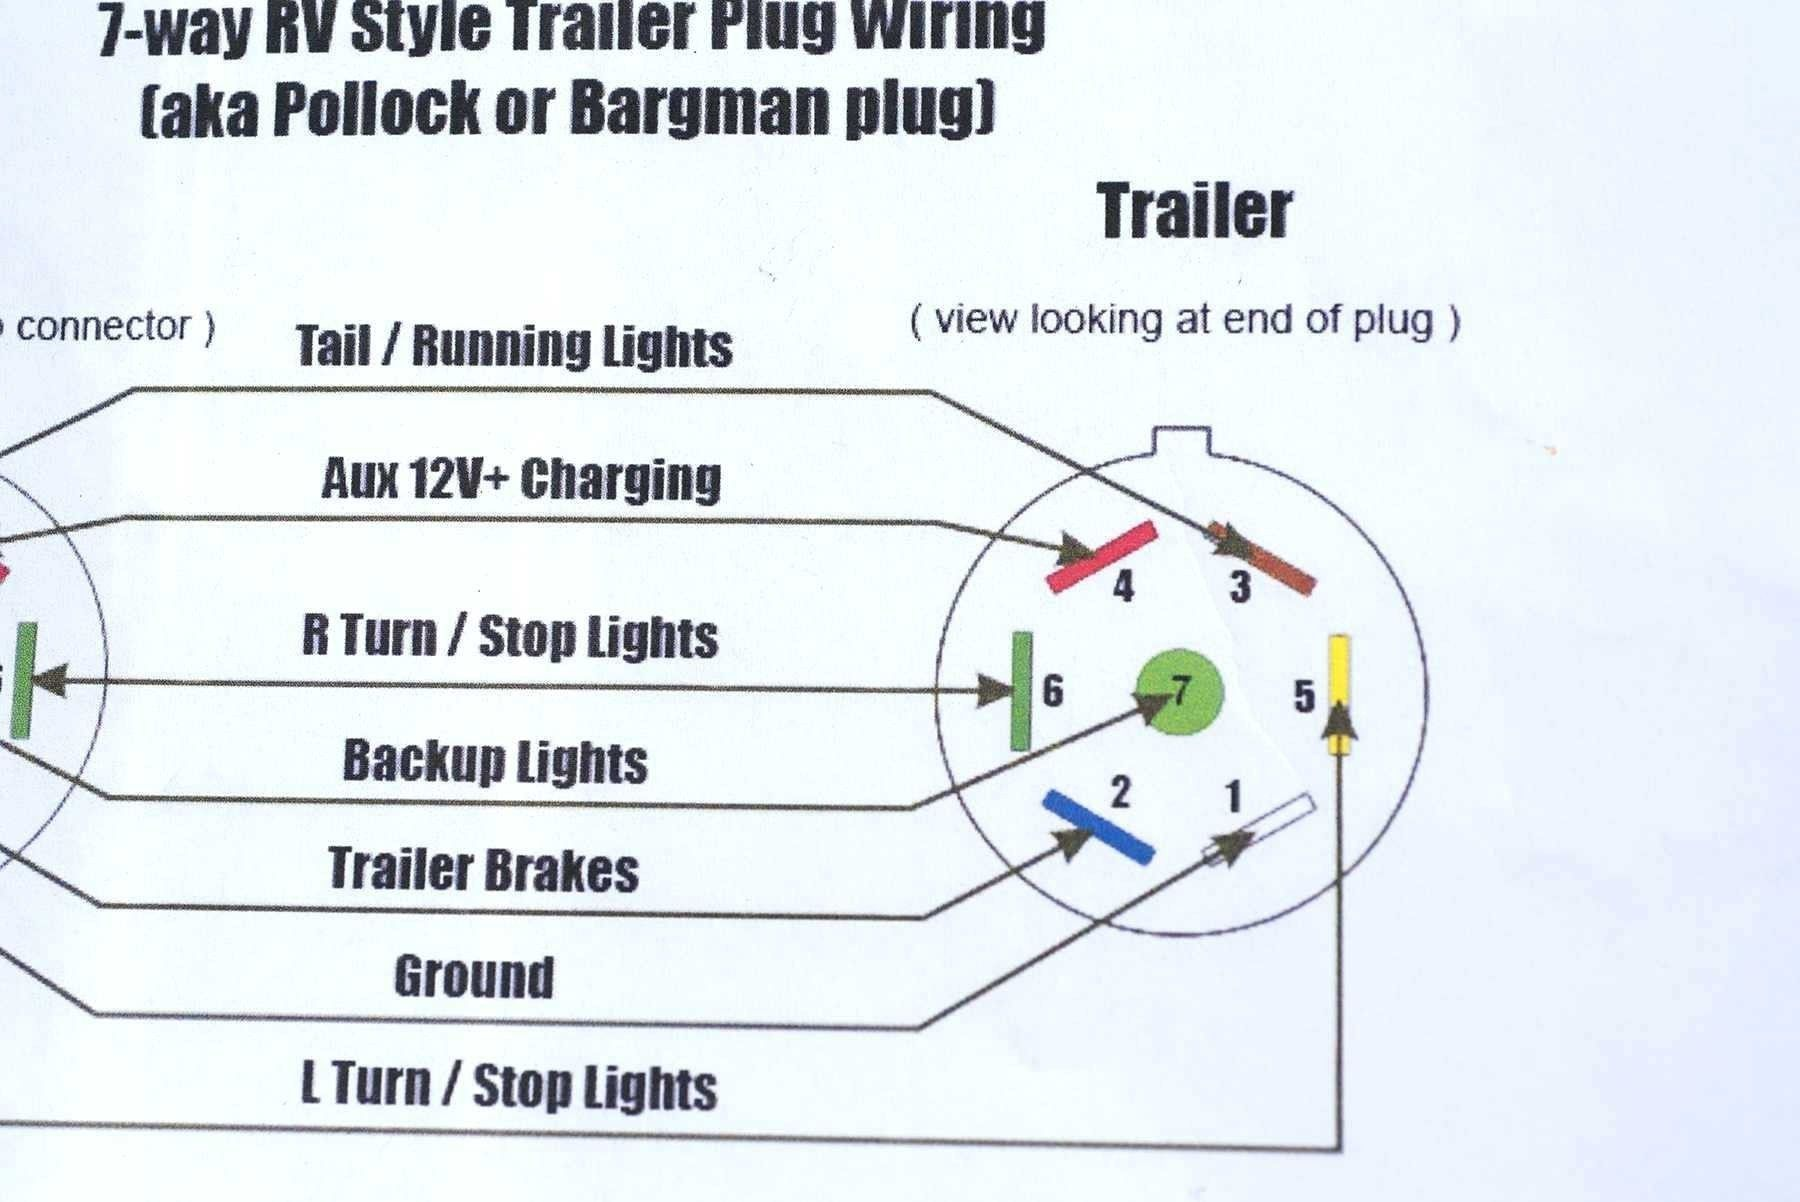 New Wiring Diagram towbar Electrics Caravan Trailer